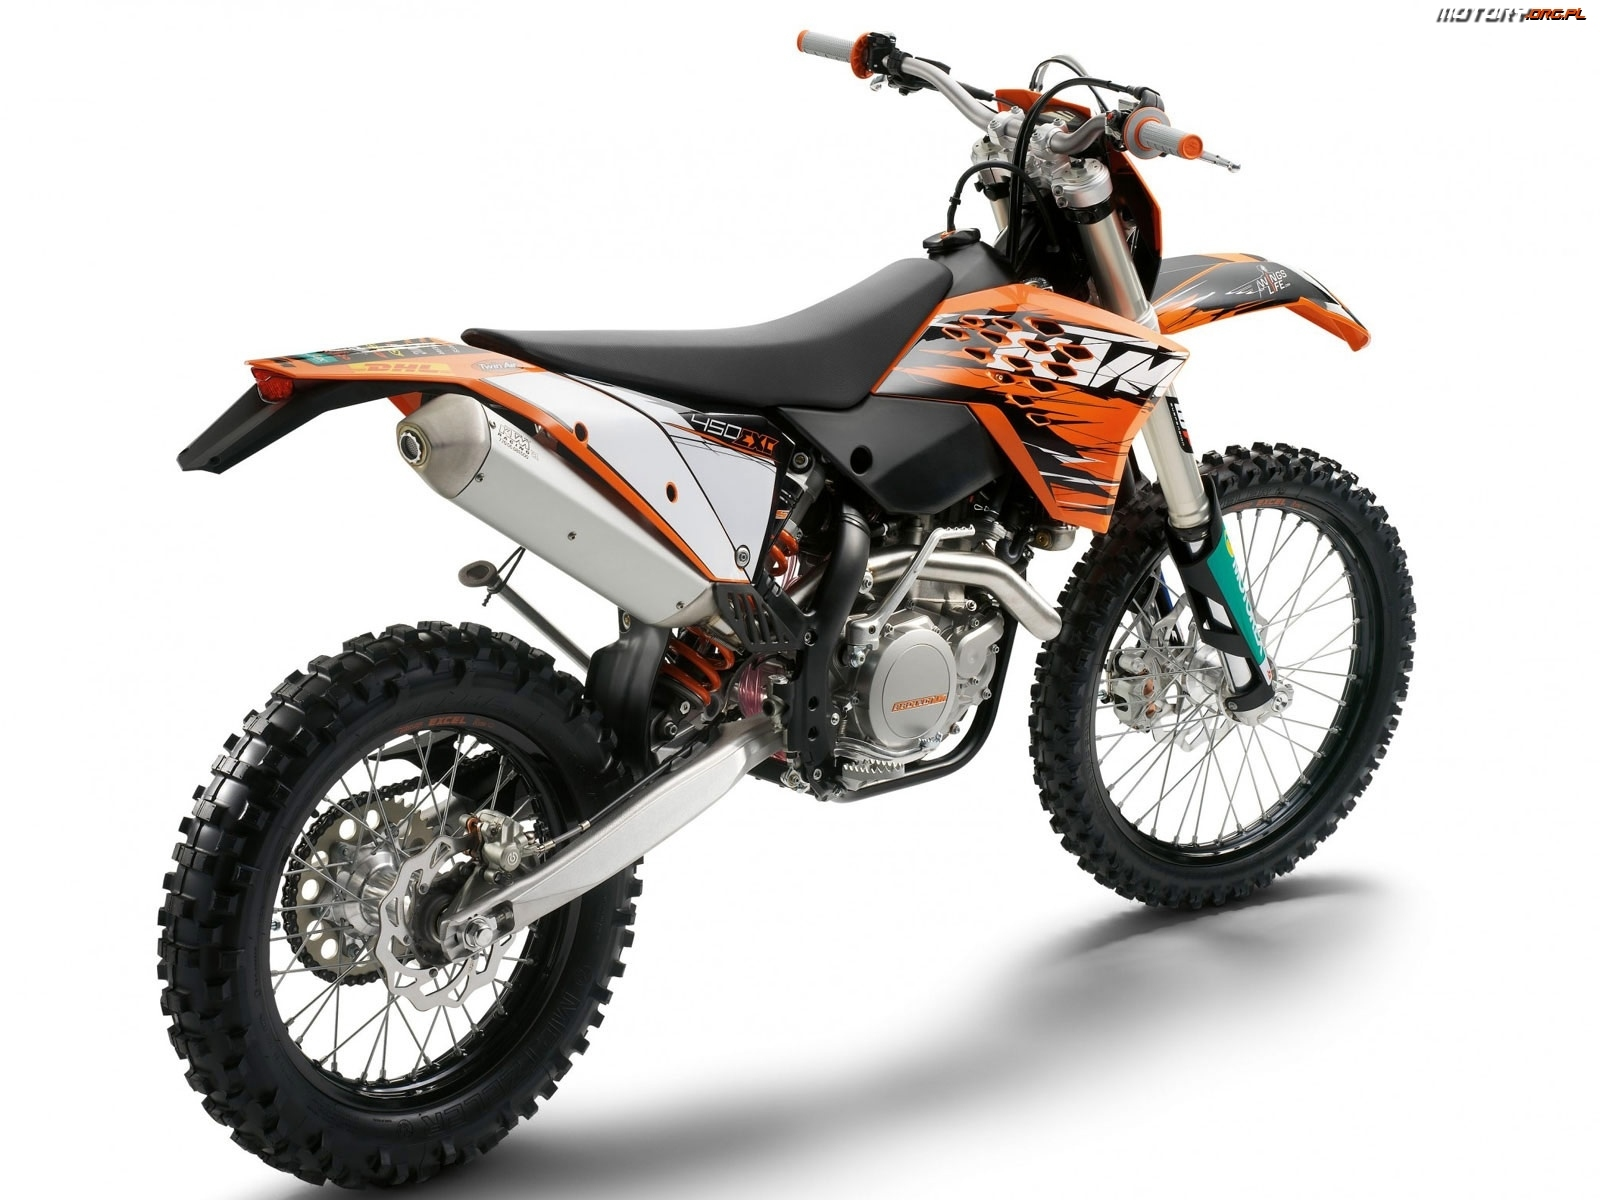 motor ktm 450 exc cross. Black Bedroom Furniture Sets. Home Design Ideas